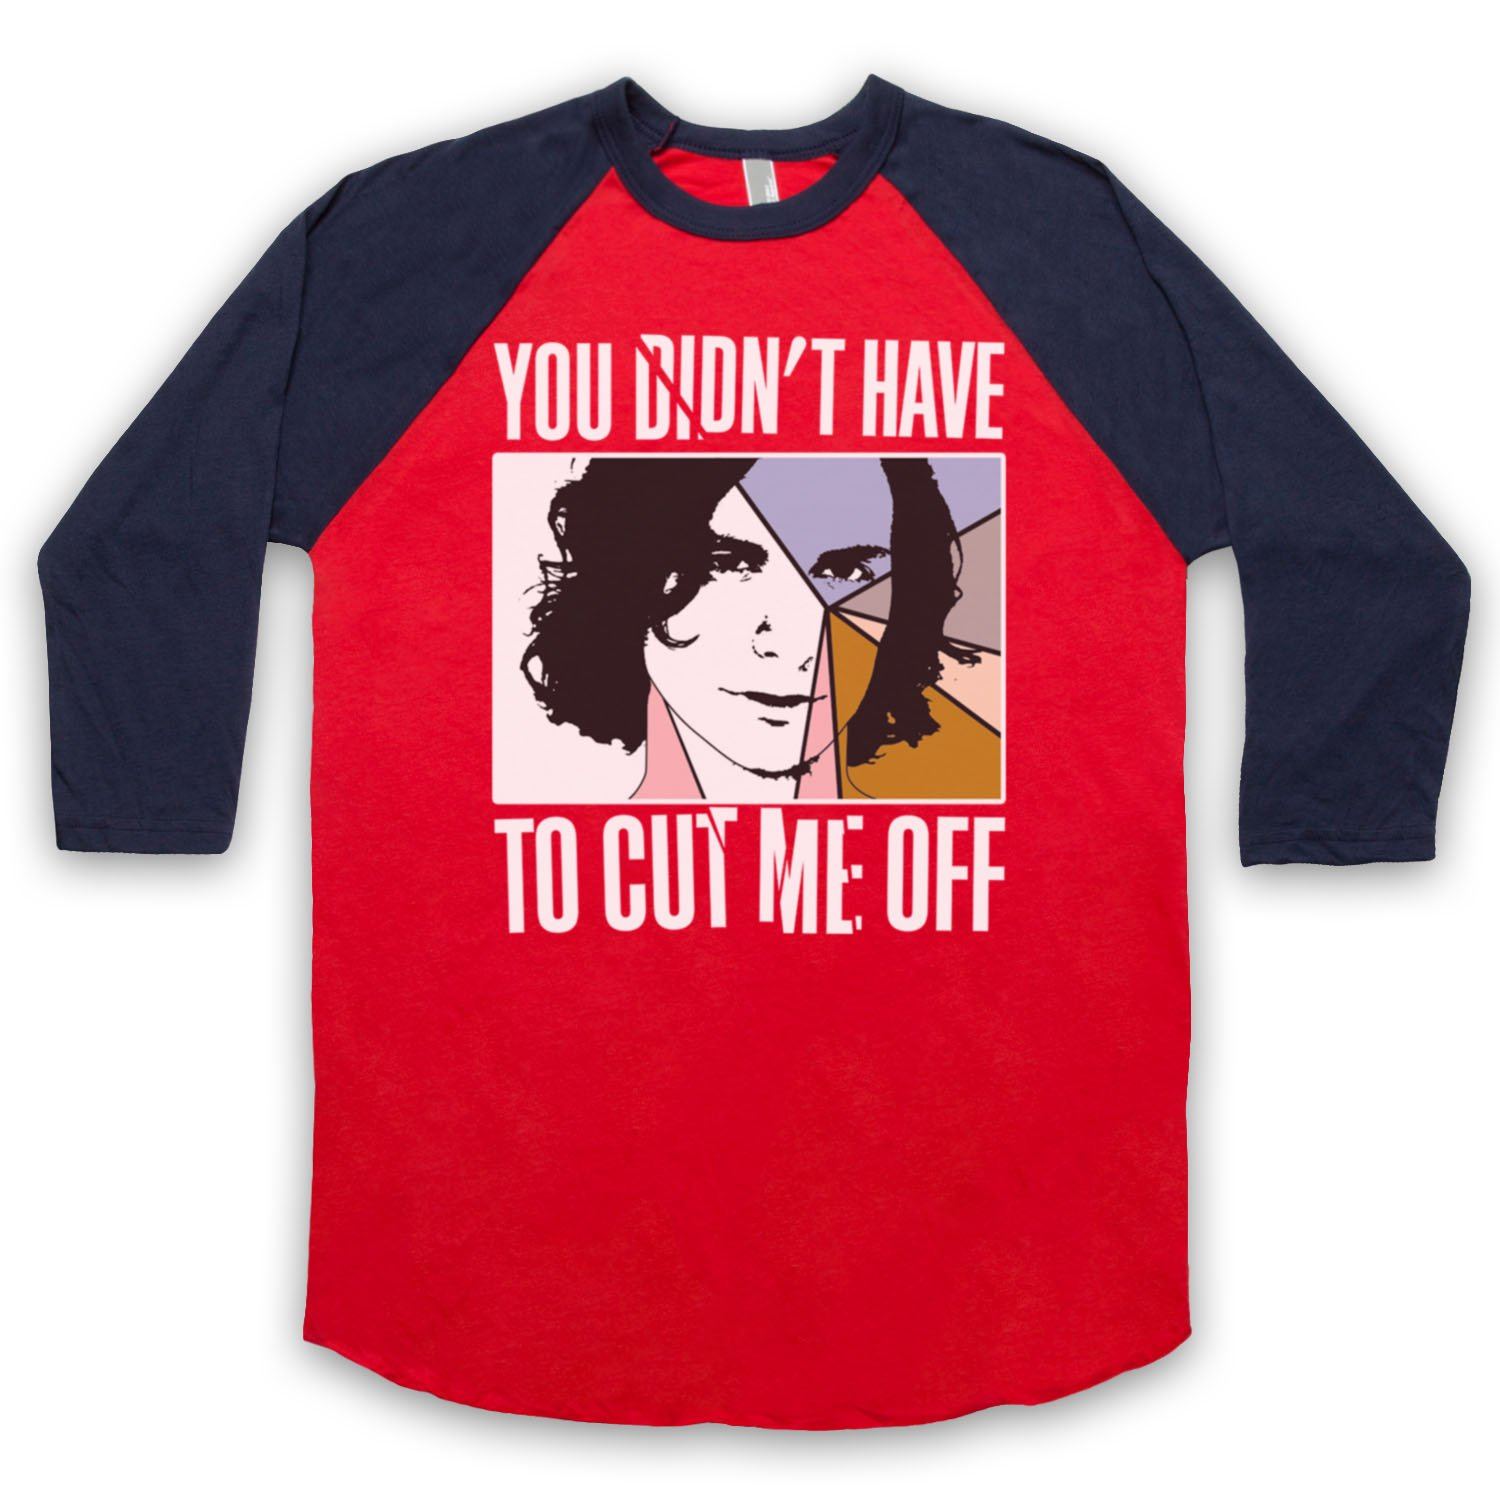 Inspired by Gotye Somebody That I Used To Know Unofficial 3/4 Sleeve Retro Baseball Tee